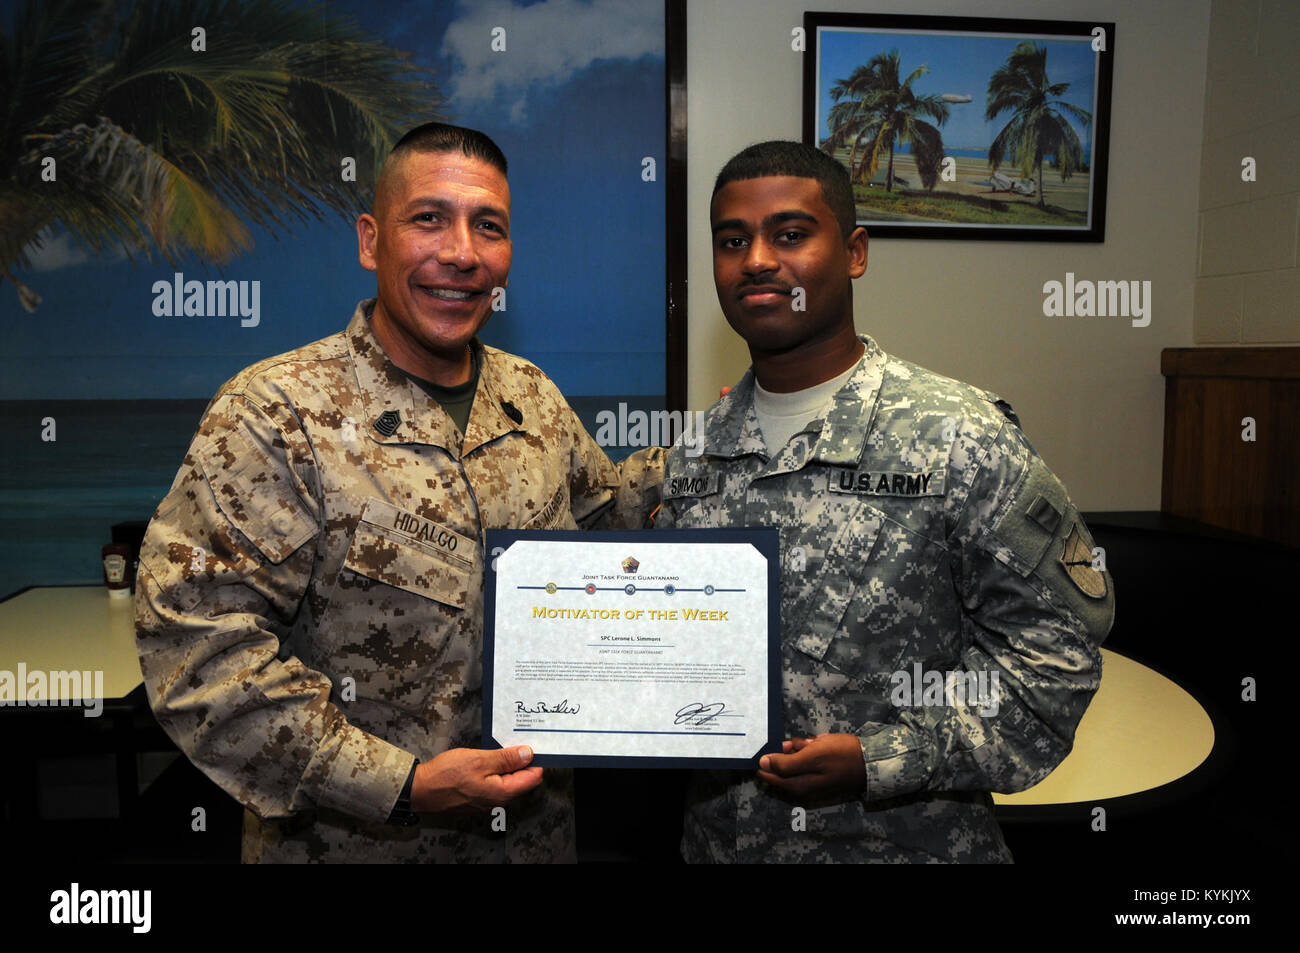 U.S. Marine Corps. Sgt. Maj. Juan Hidalgo, Jr., Senior Enlisted Leader at U.S. Naval Station Guantanamo Bay, Cuba, Stock Photo